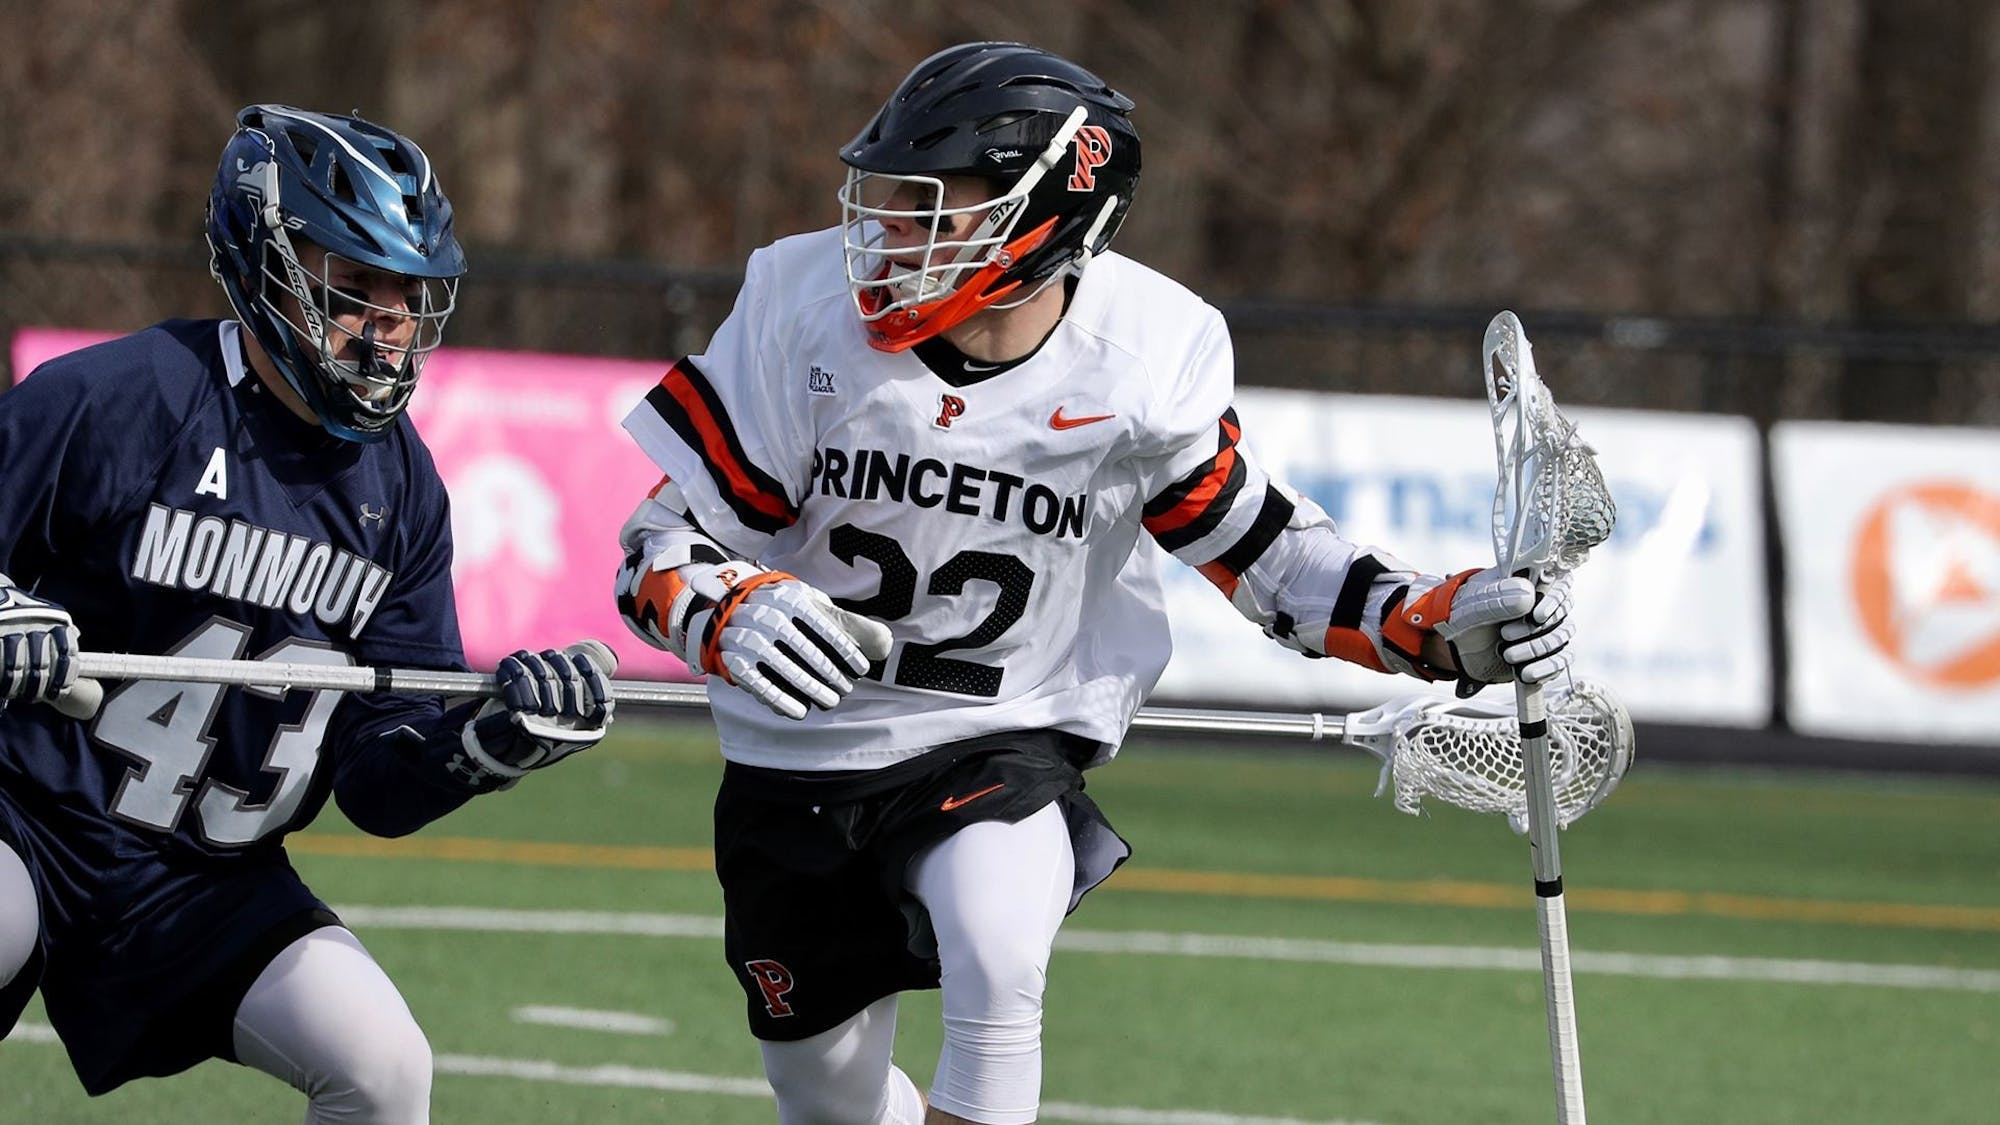 mlax-sowers-monmouth